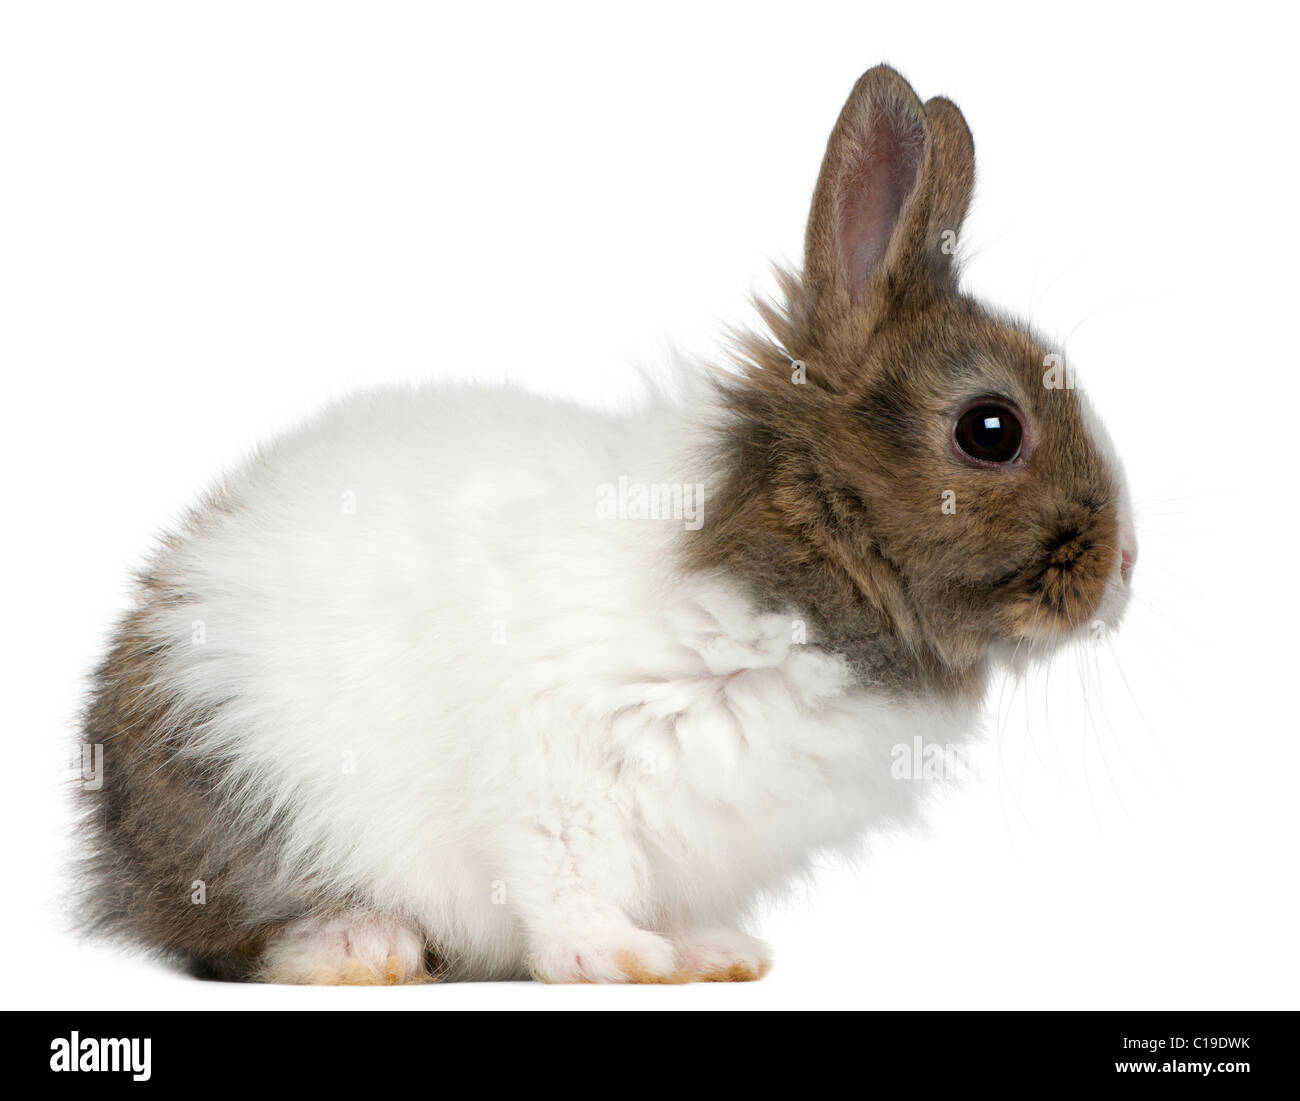 Young Lionhead rabbit, 2 months old, in front of white background Stock Photo